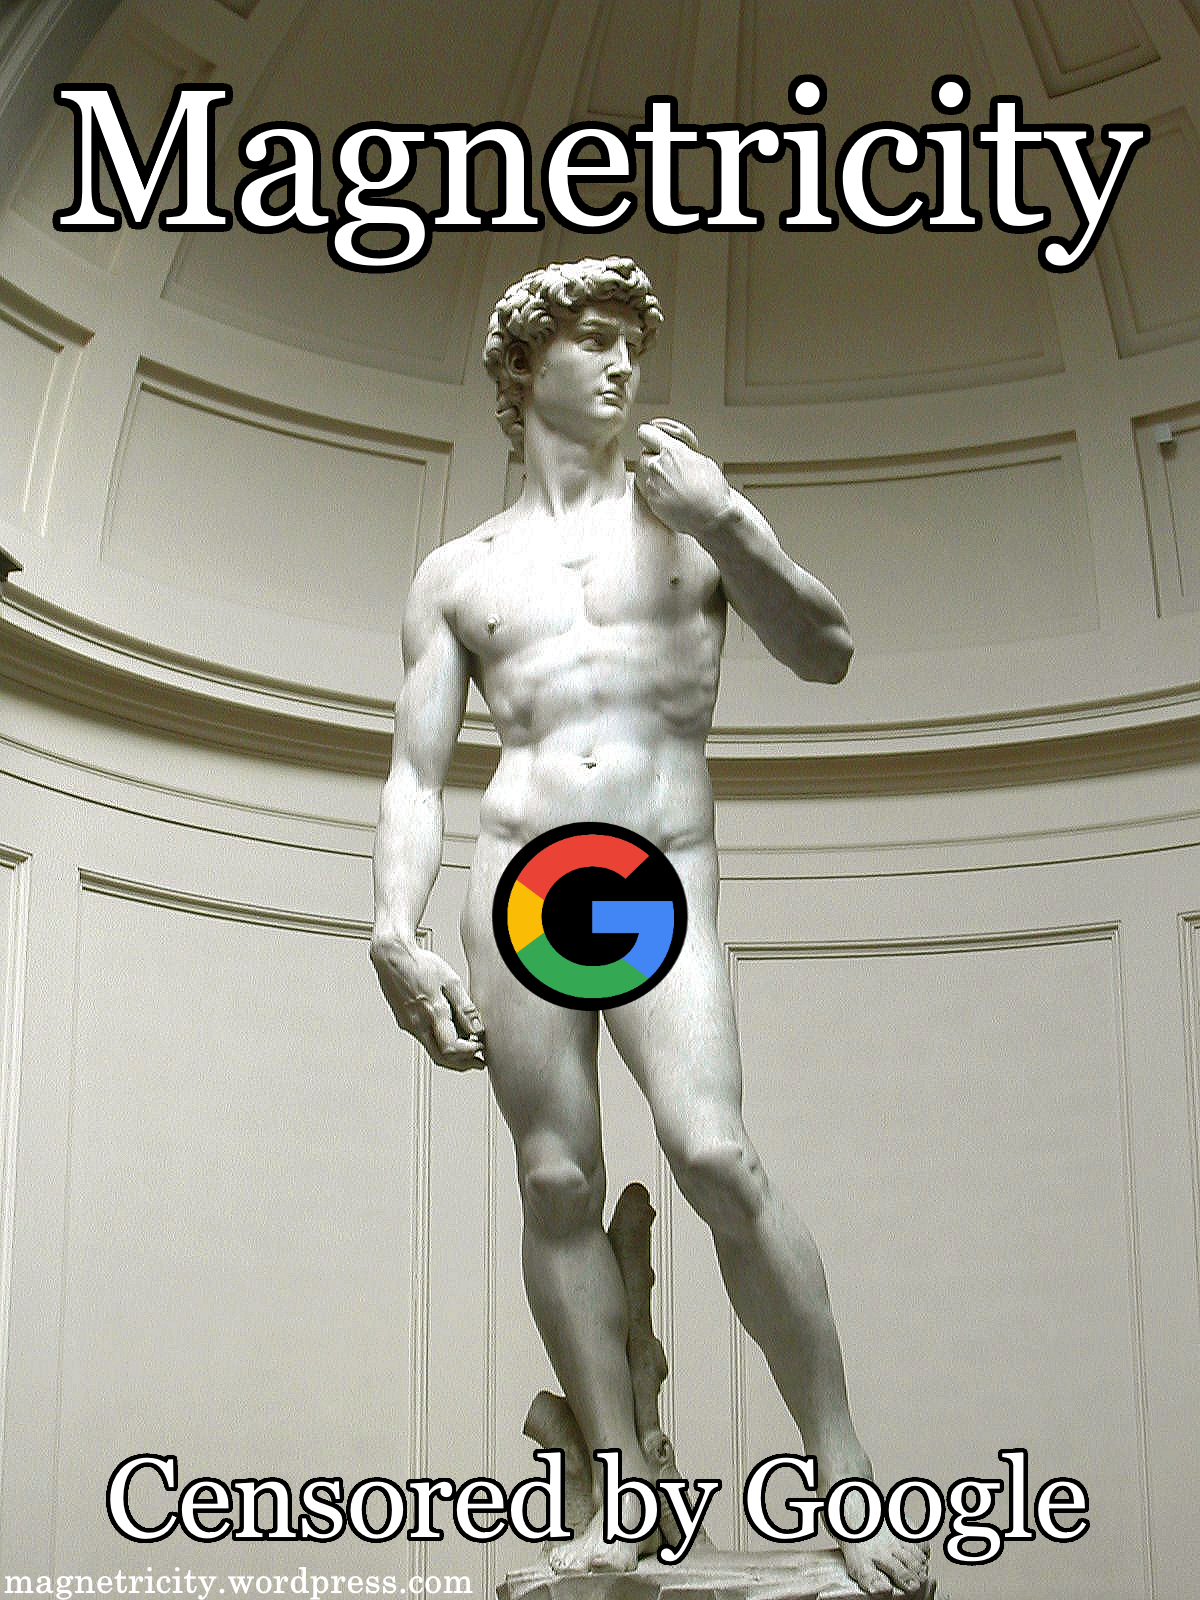 David statue Magnetricity Google censored